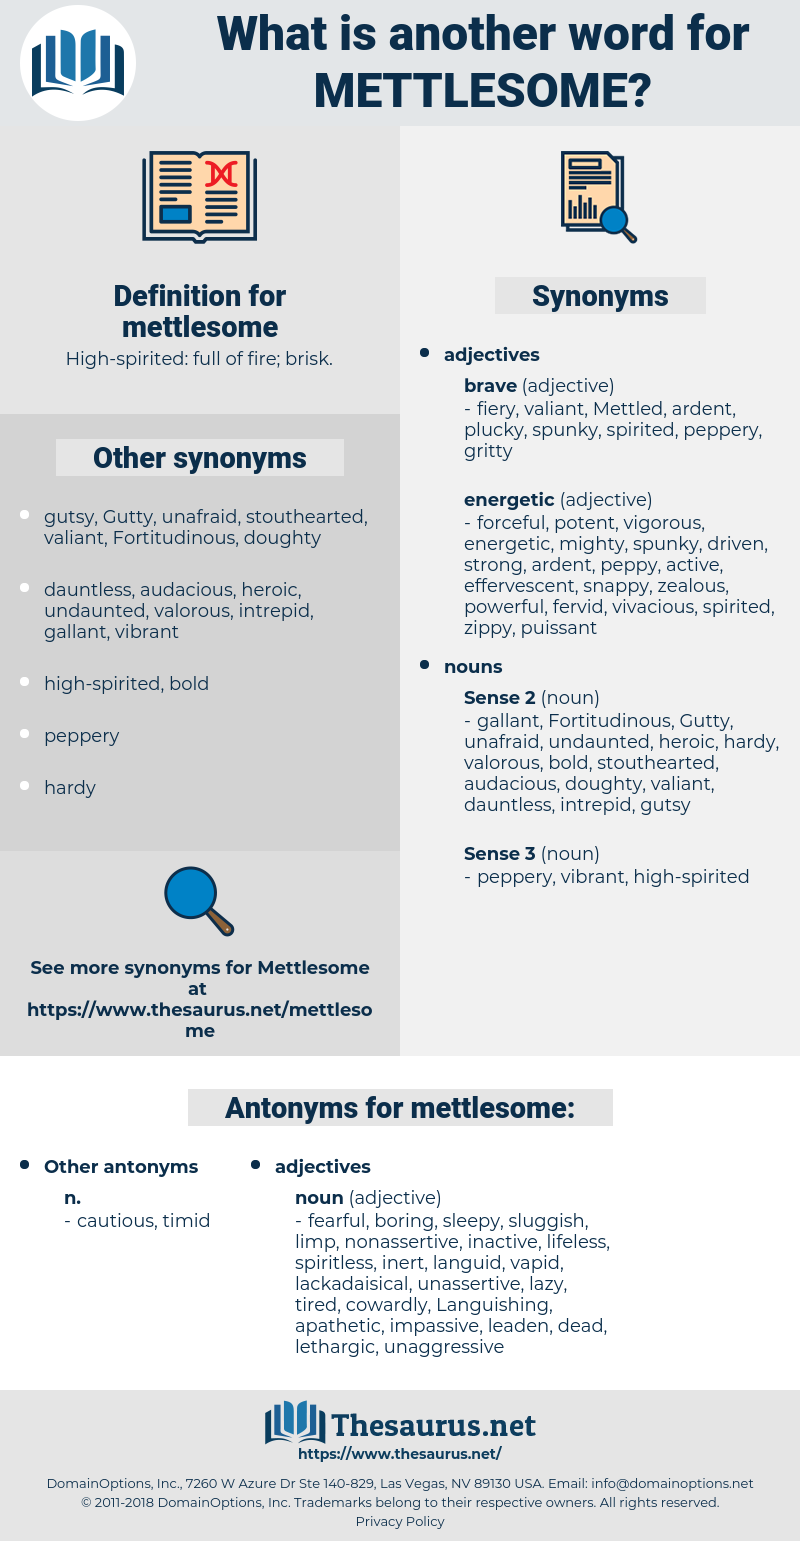 mettlesome, synonym mettlesome, another word for mettlesome, words like mettlesome, thesaurus mettlesome